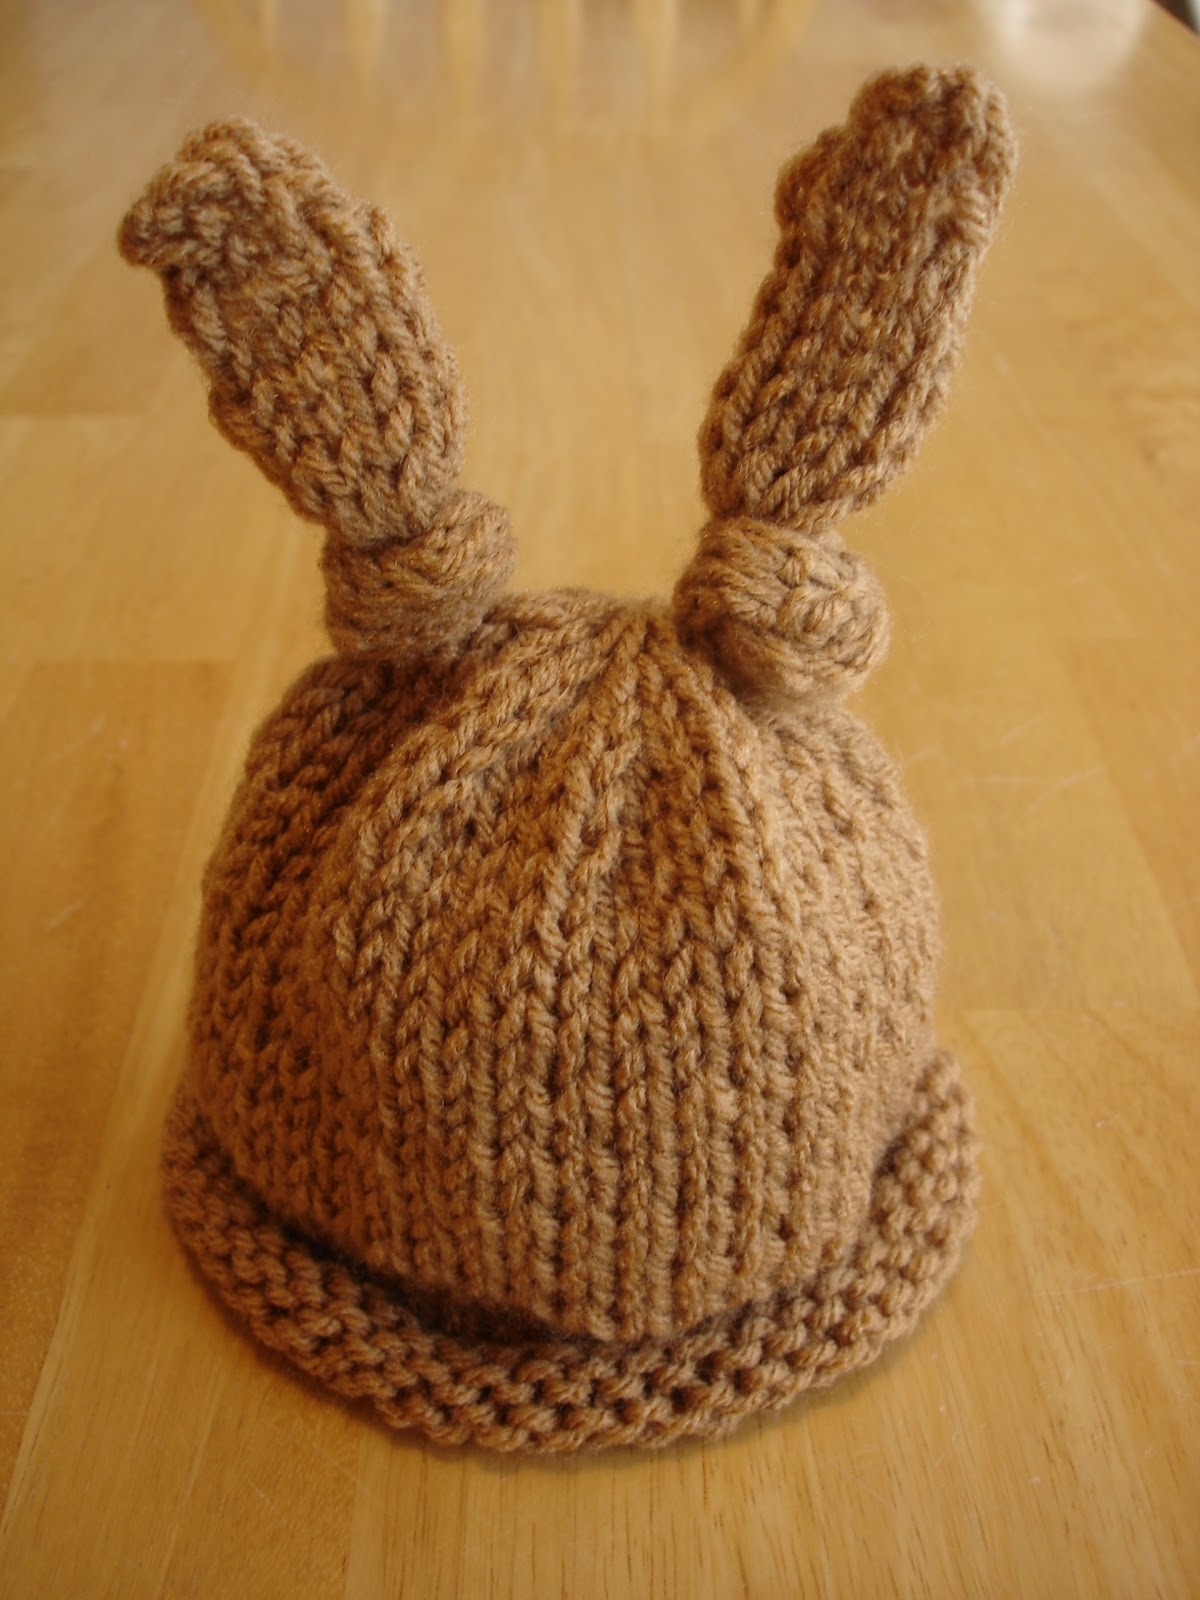 Free Knitted Baby Hat Patterns : Fiber Flux: Free Knitting Pattern...Baby Bunny Newborn or Preemie Hat!